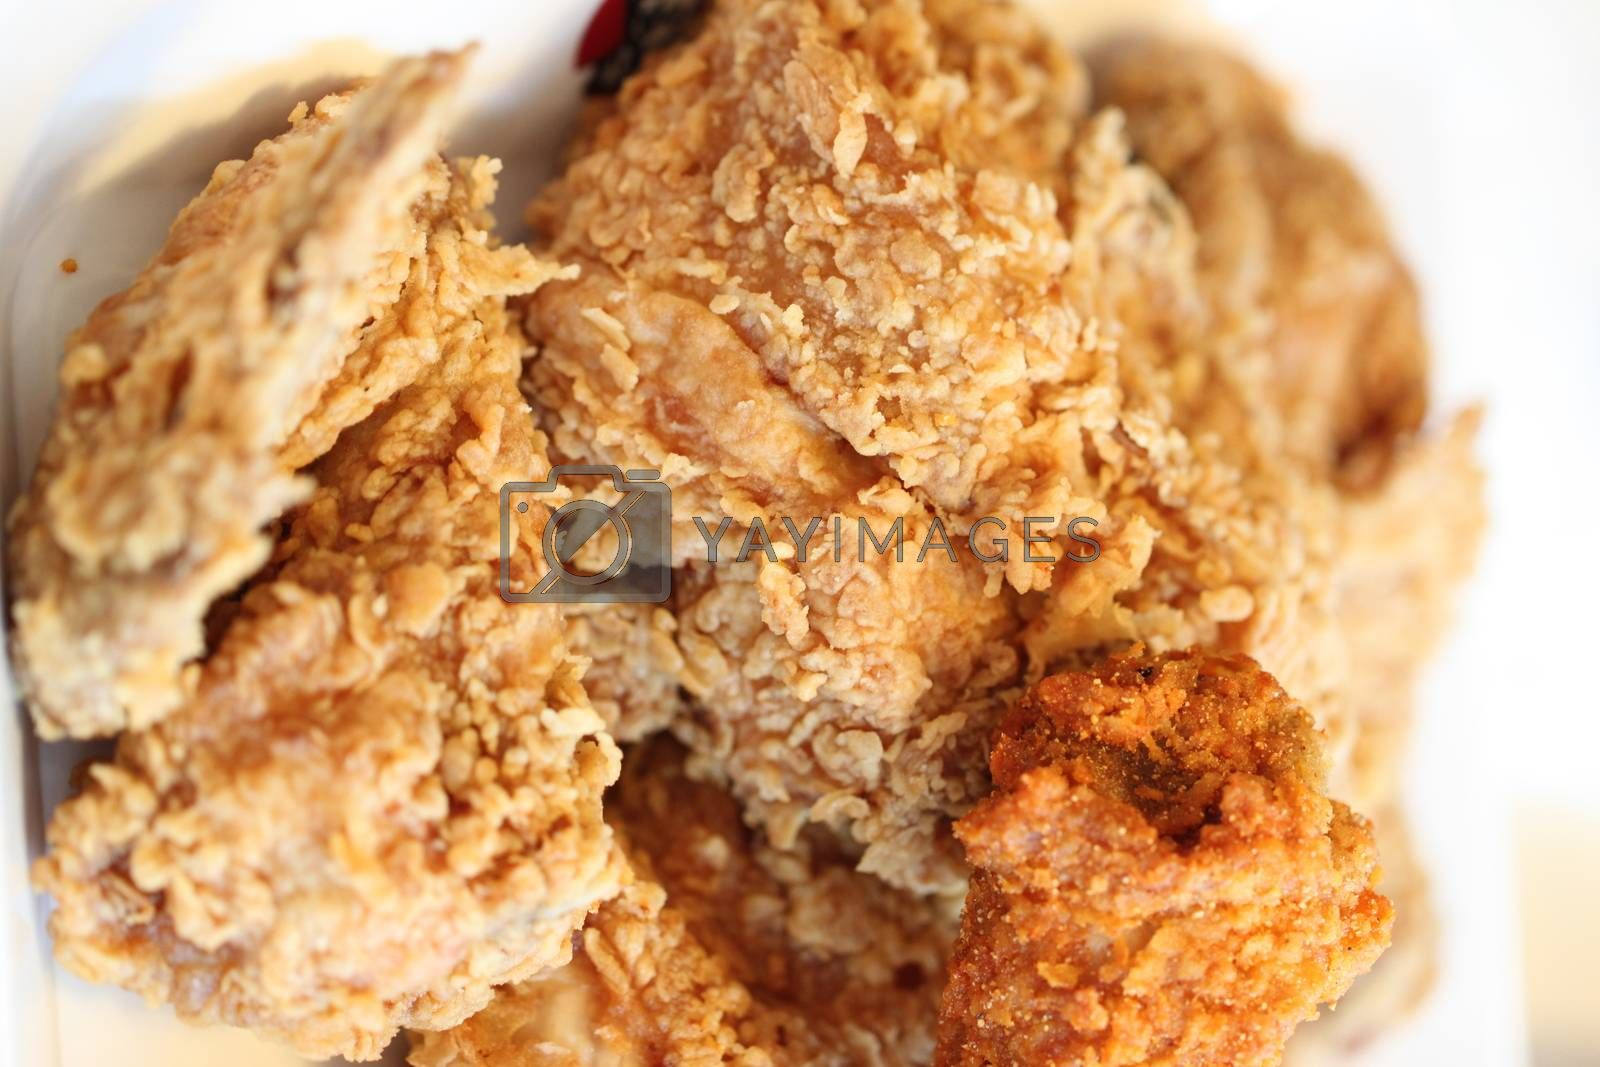 Fried chicken on a dish. by PiyaPhoto